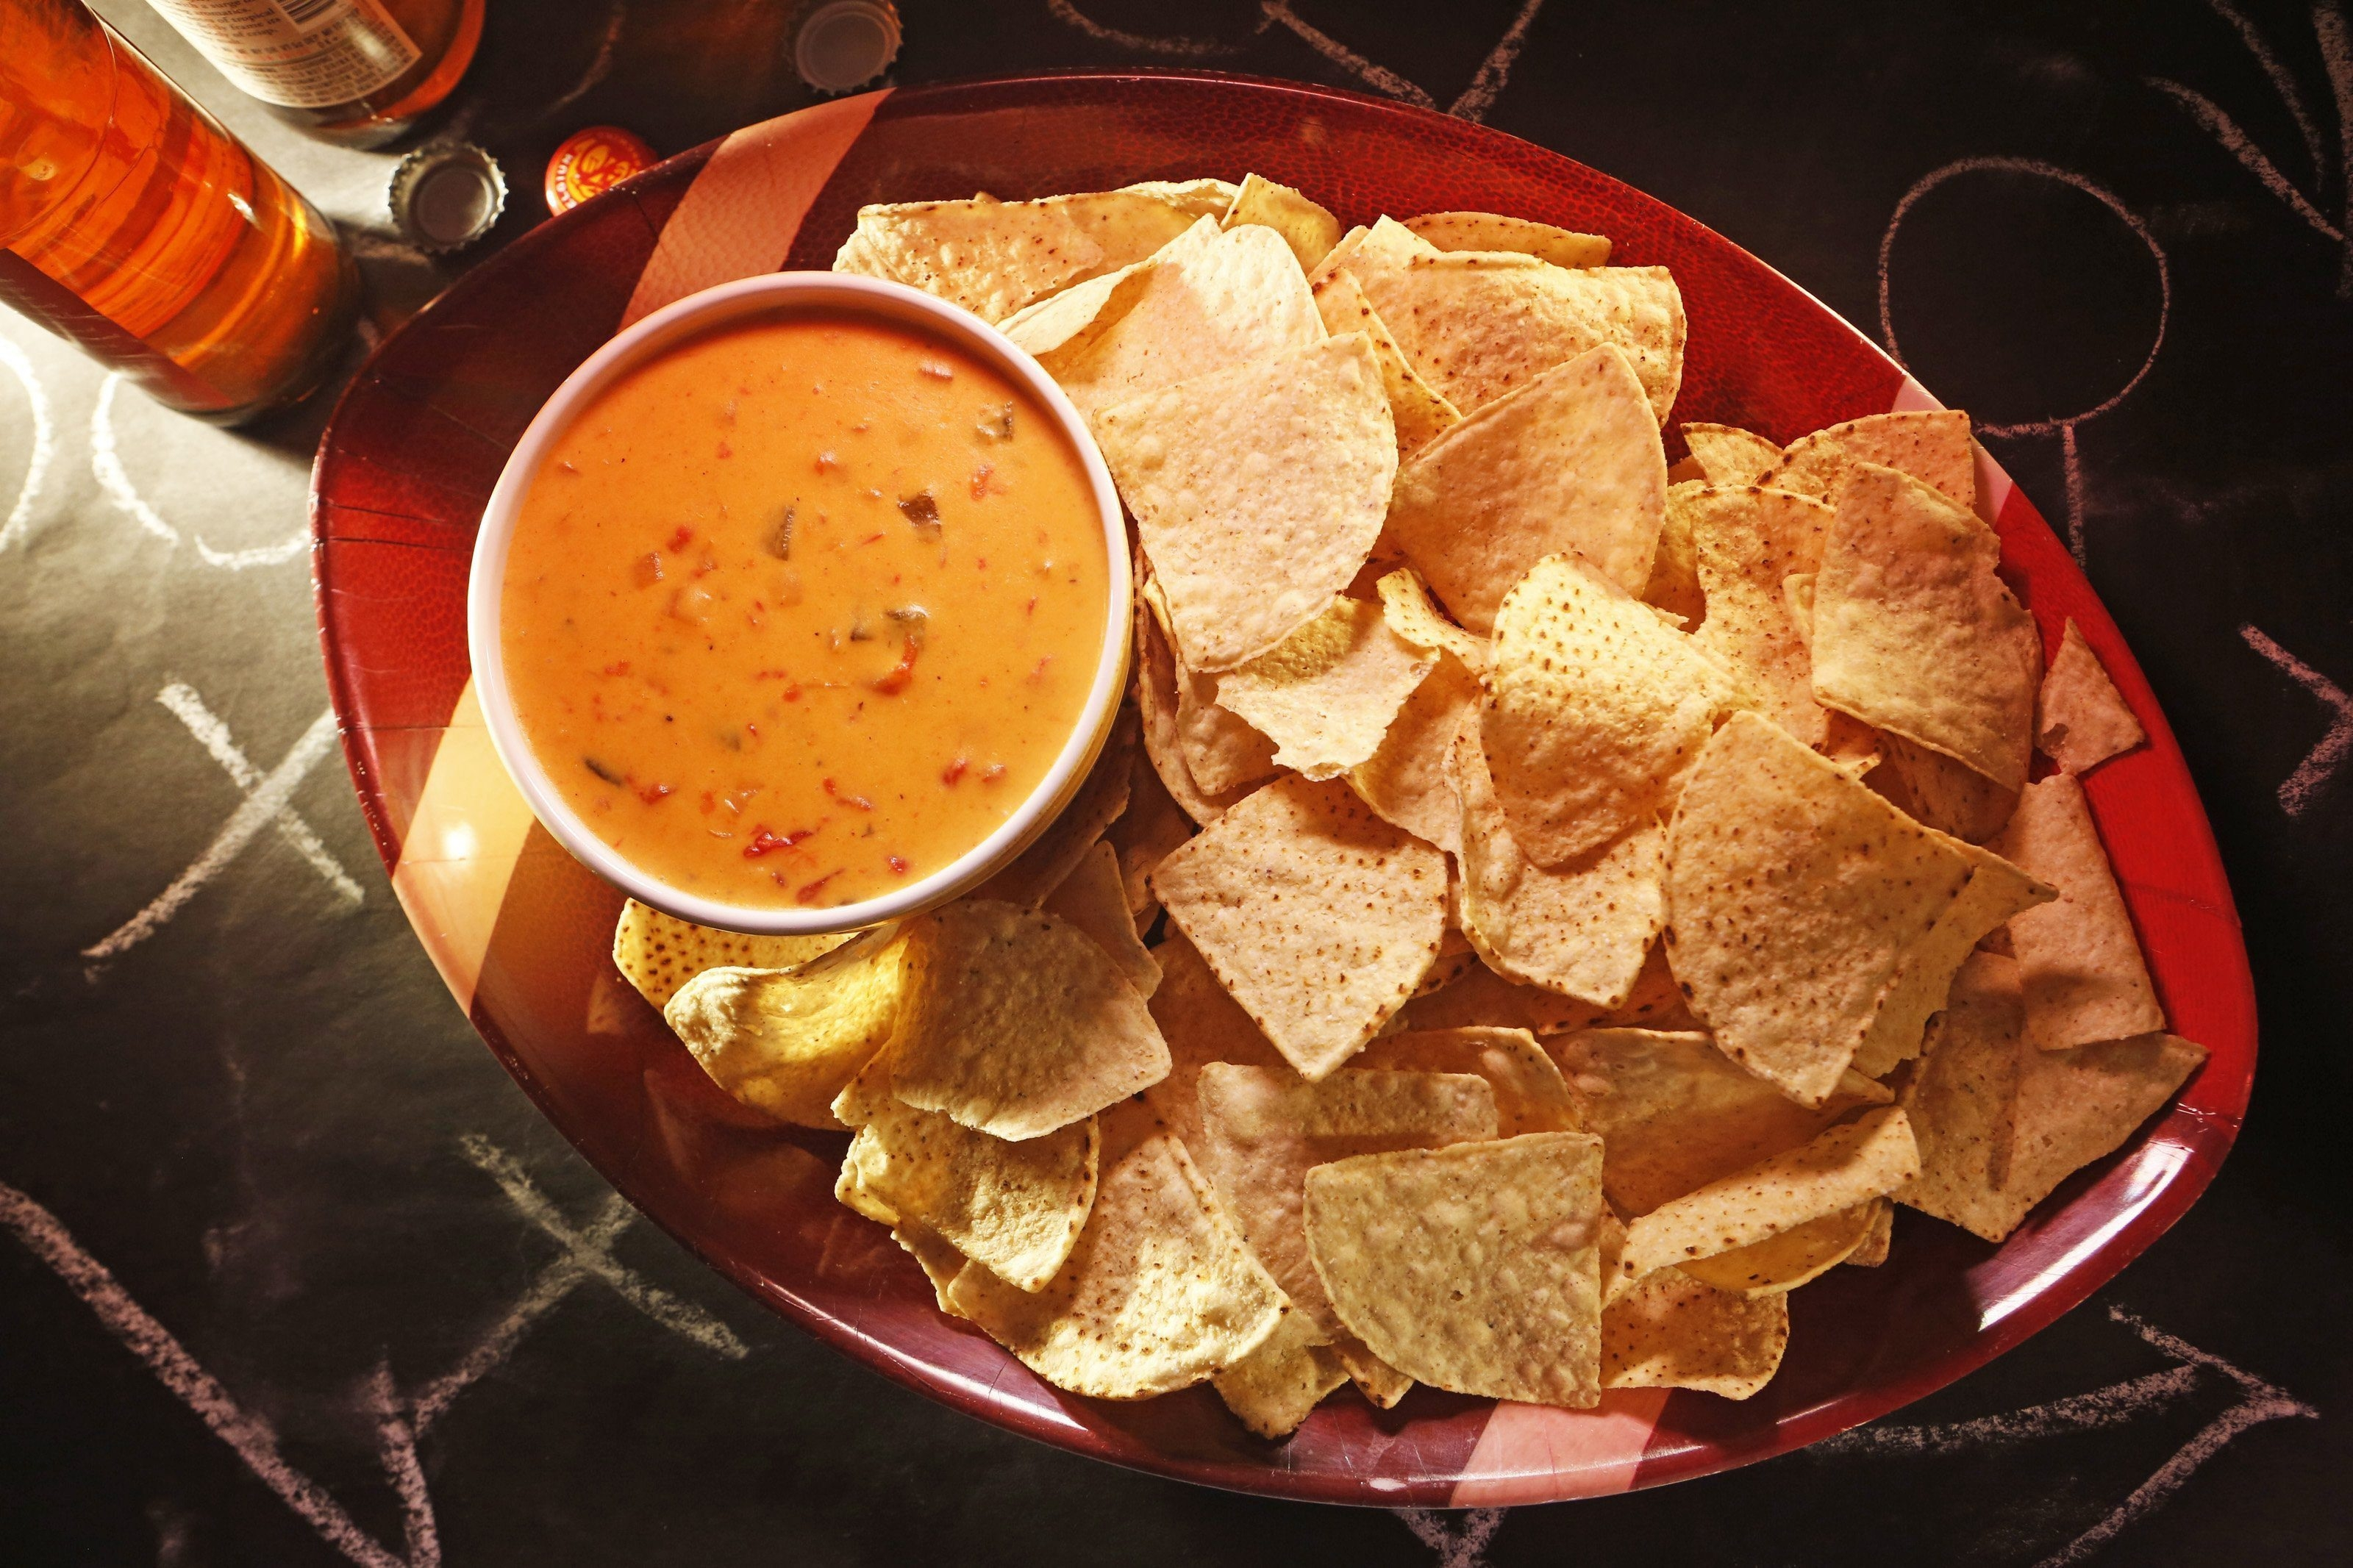 Processed cheese melts better than real cheese, making it the perfect cheese for a queso dip.